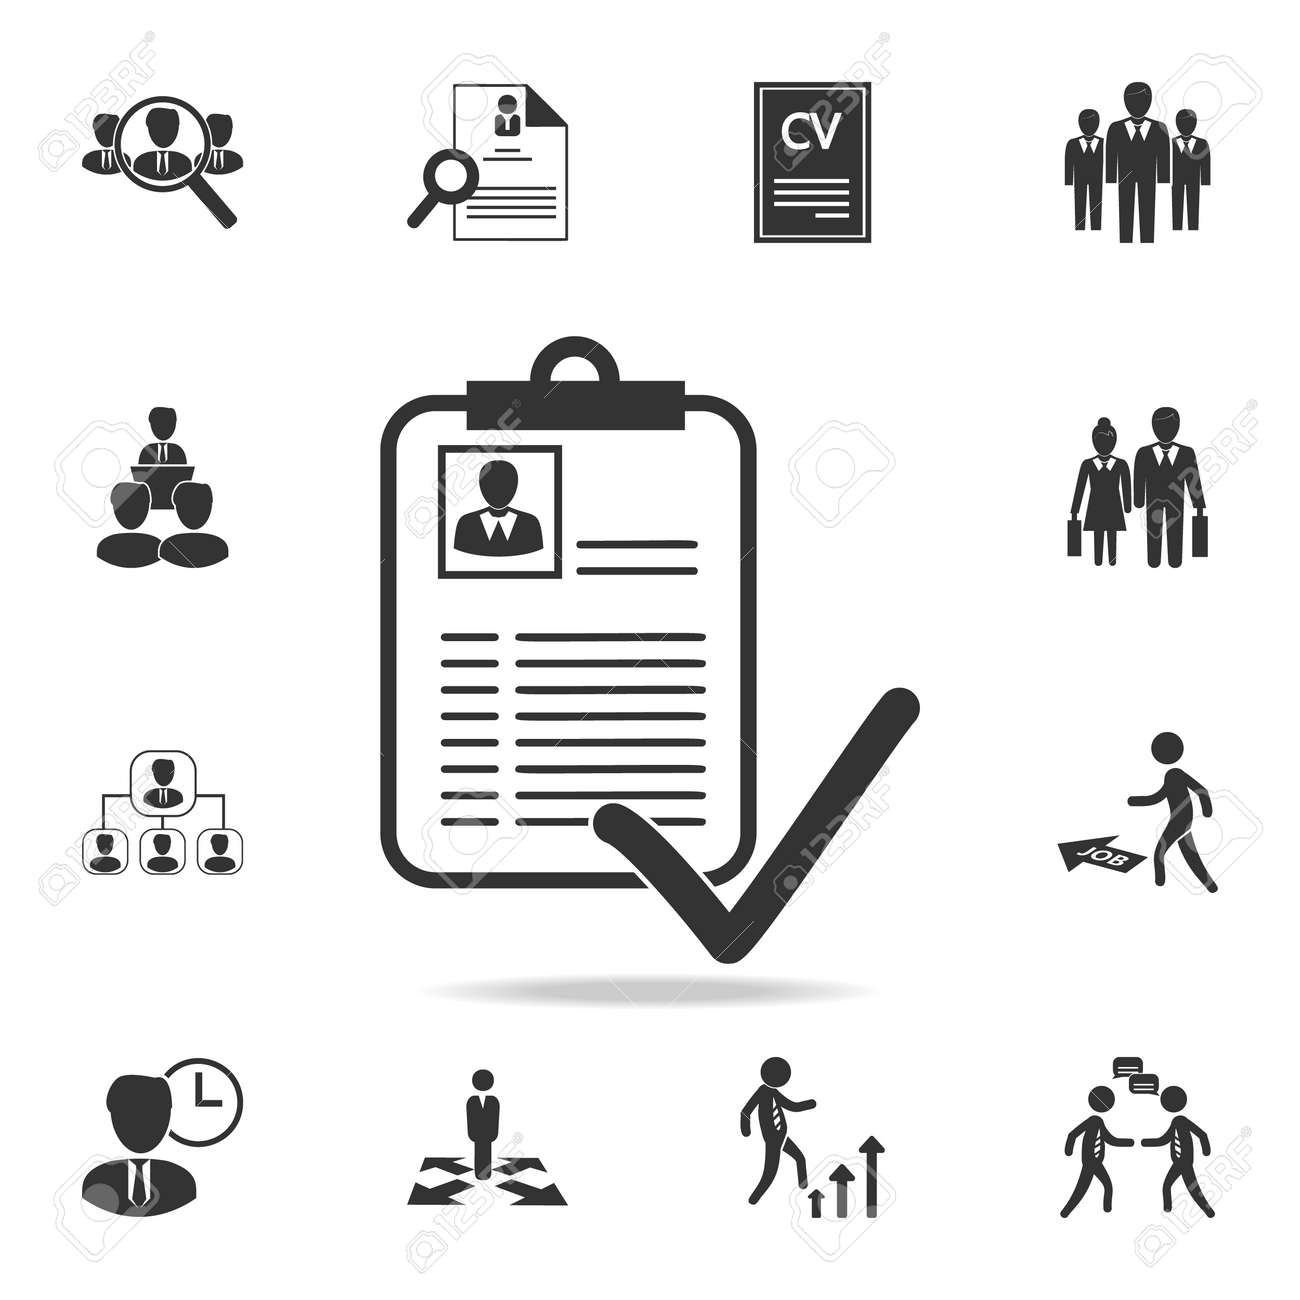 Approved Curriculum Vitae Icon Set Of Human Resources Head